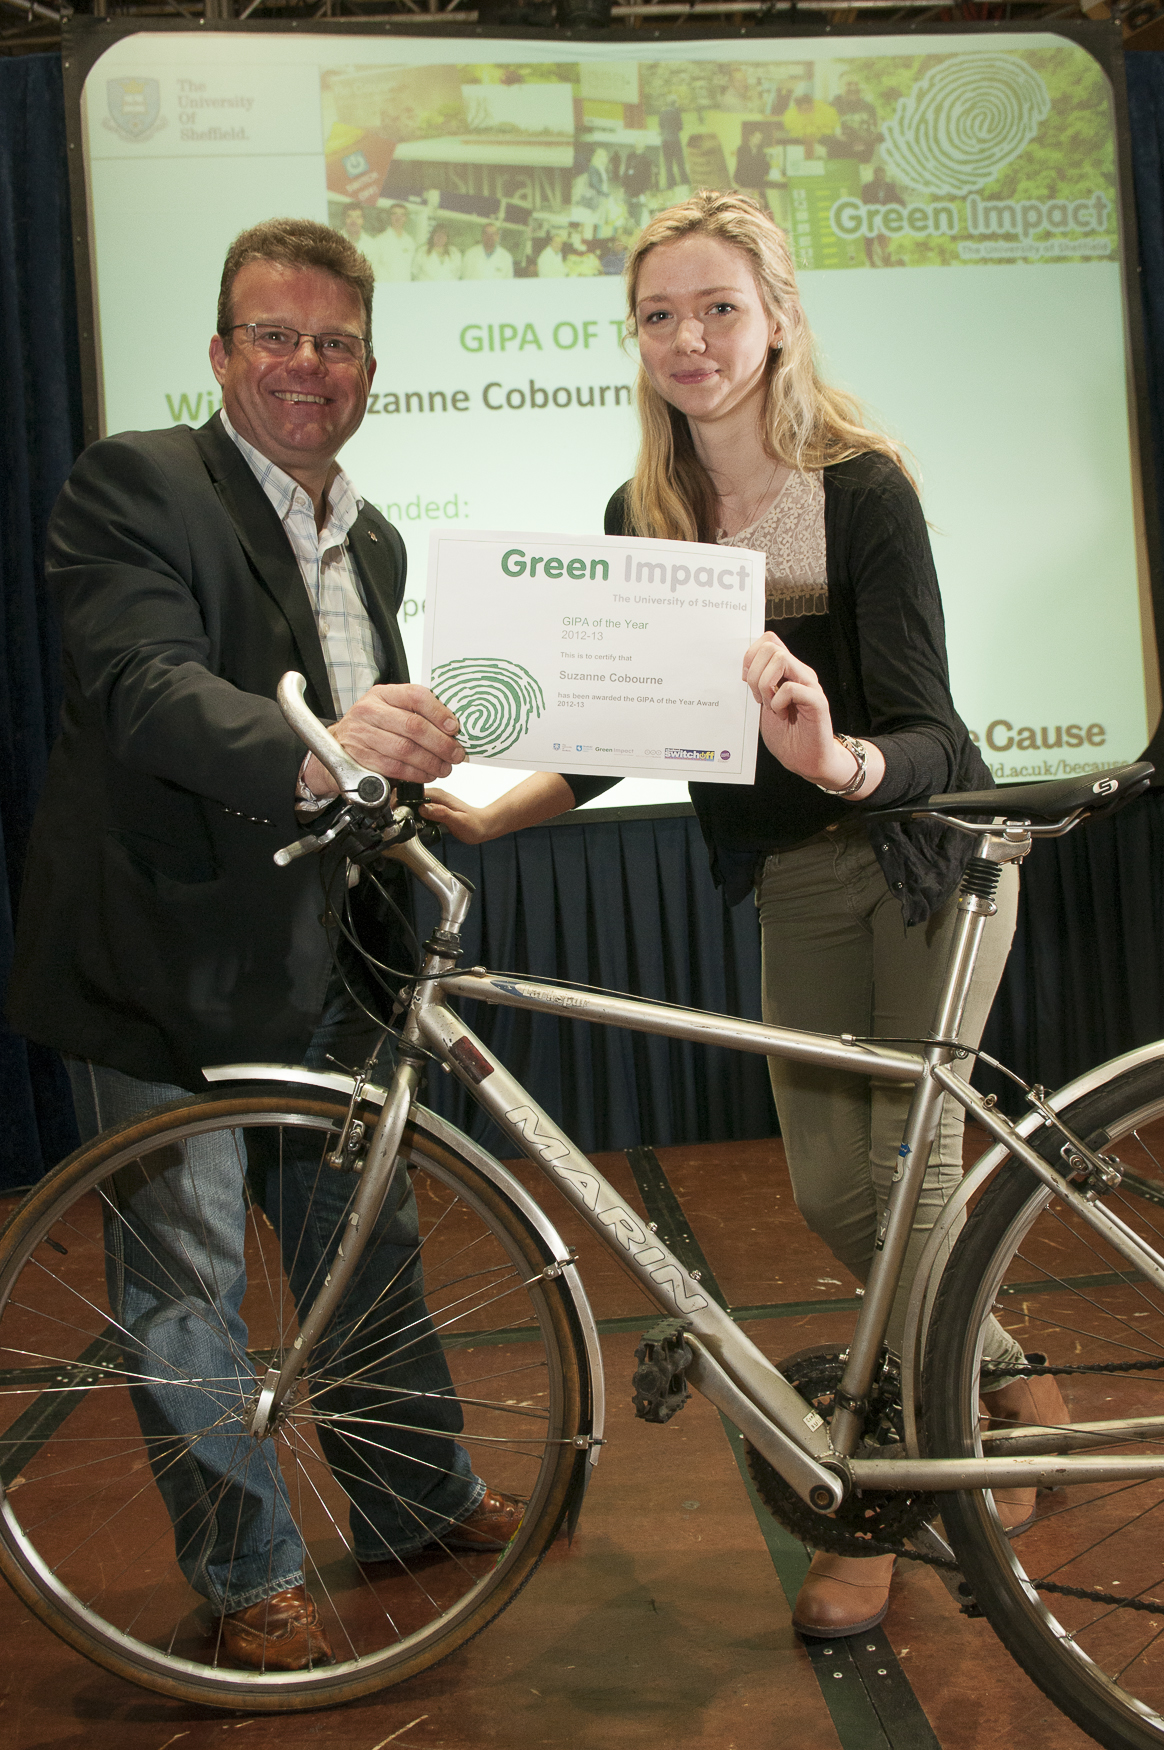 Suzanne Cobourne, GIPA of the Year 2012/13, was awarded a bike donated by Professor Tony Ryan, and a day at the annual EAUC conference